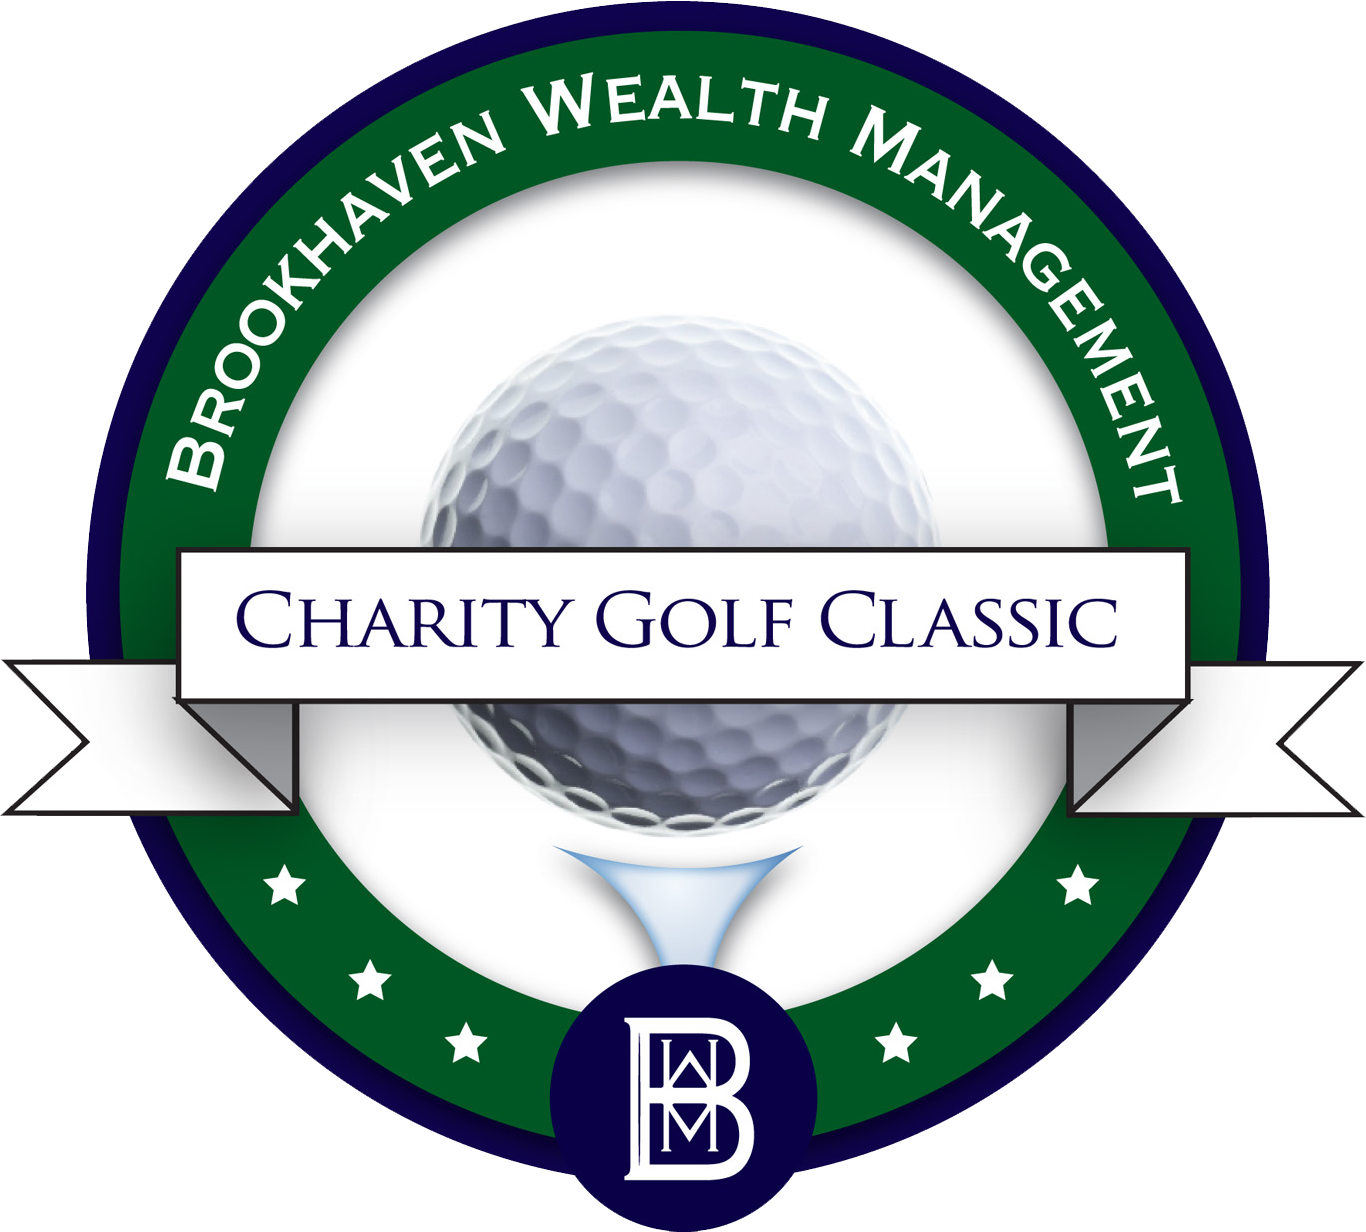 Brookhaven Wealth Management Charity Golf Classic & Fundraiser logo